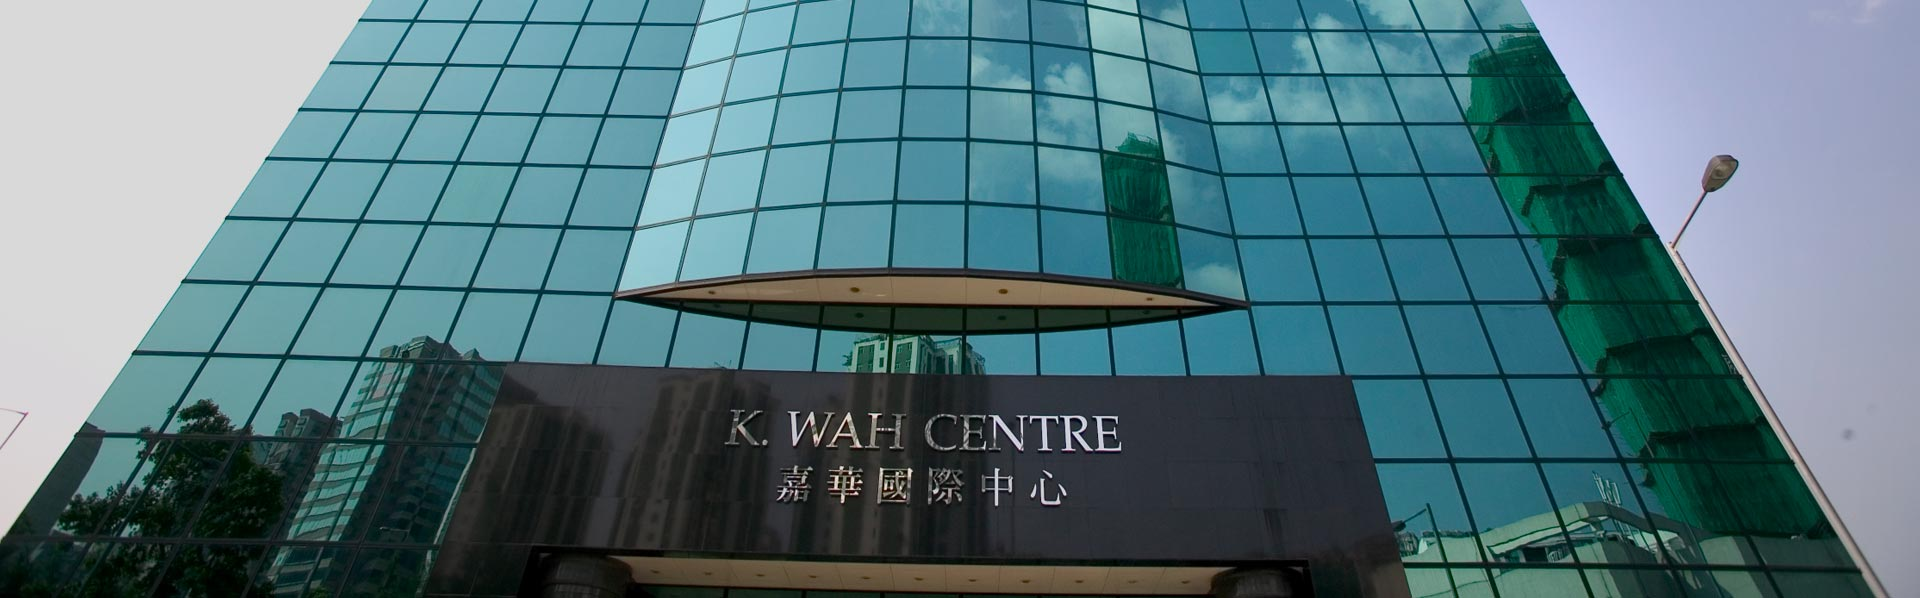 K. WAH CENTRE